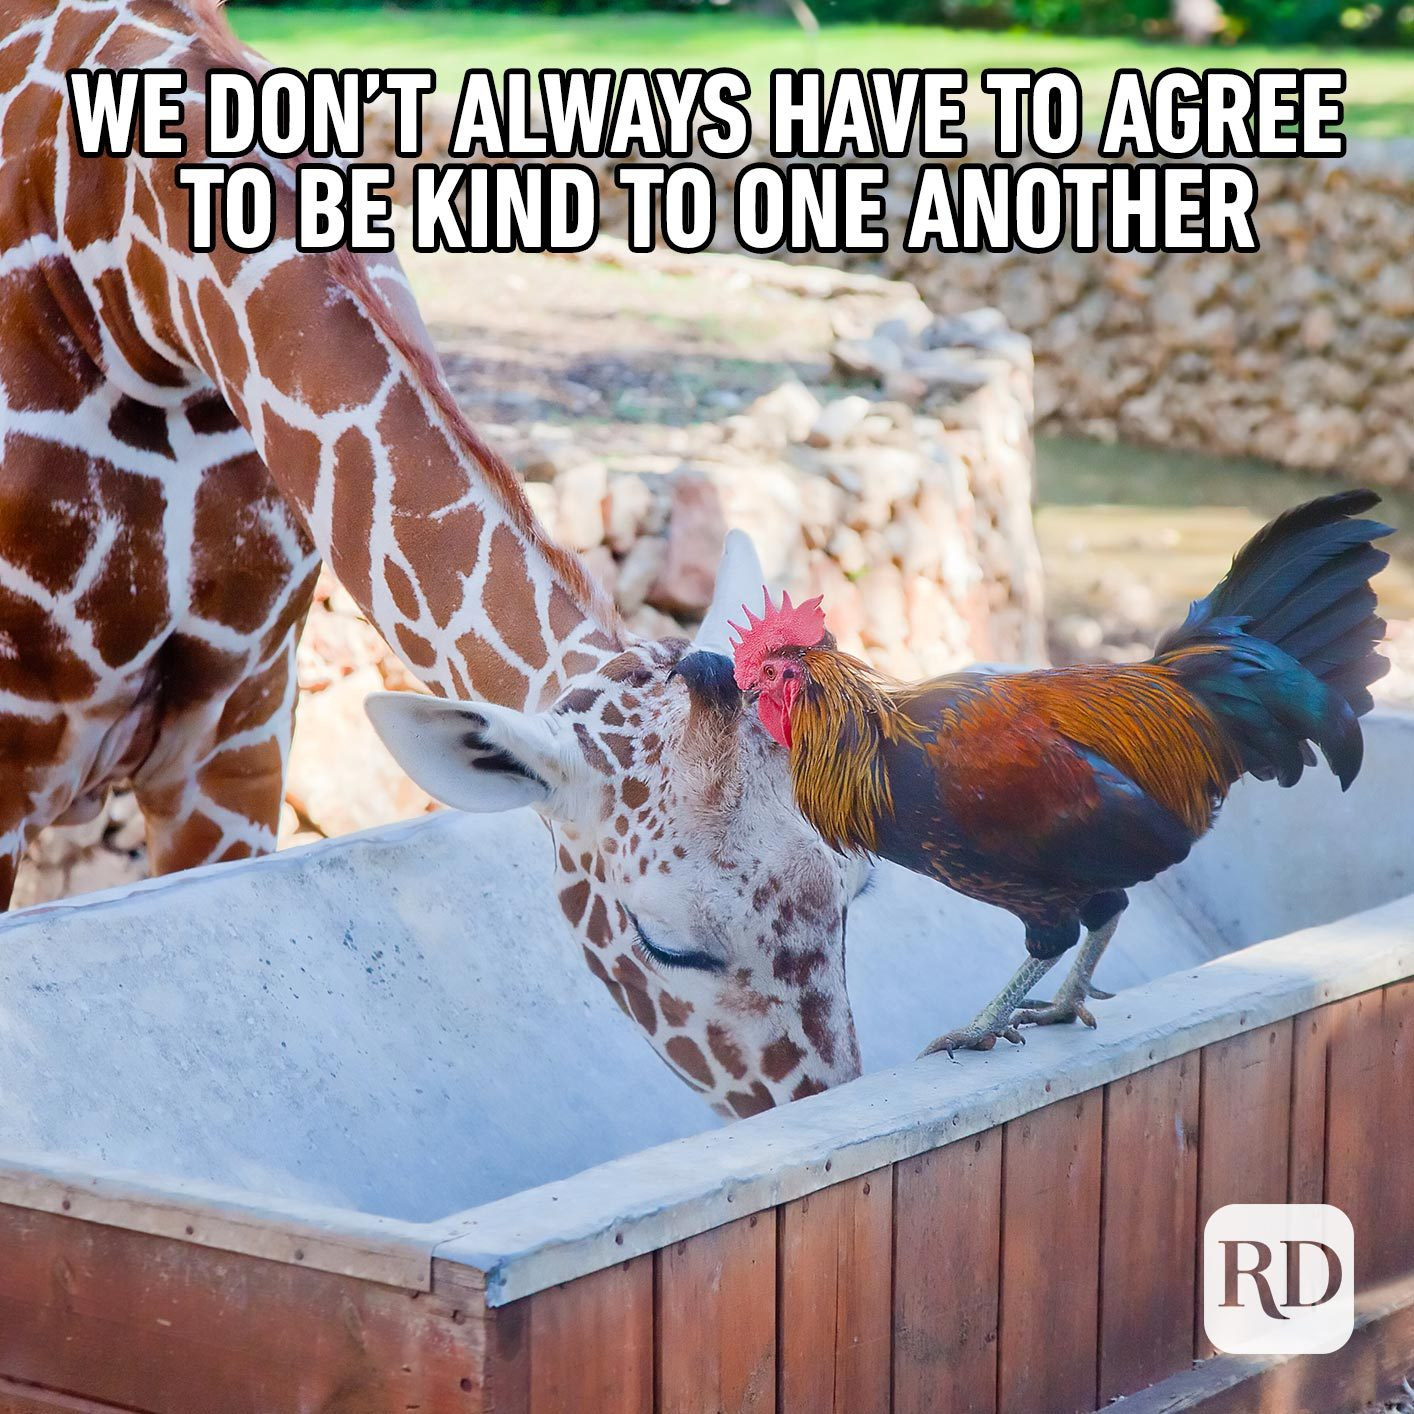 Chicken and giraffe talking. Meme text: We don't always have to agree to be kind to one another